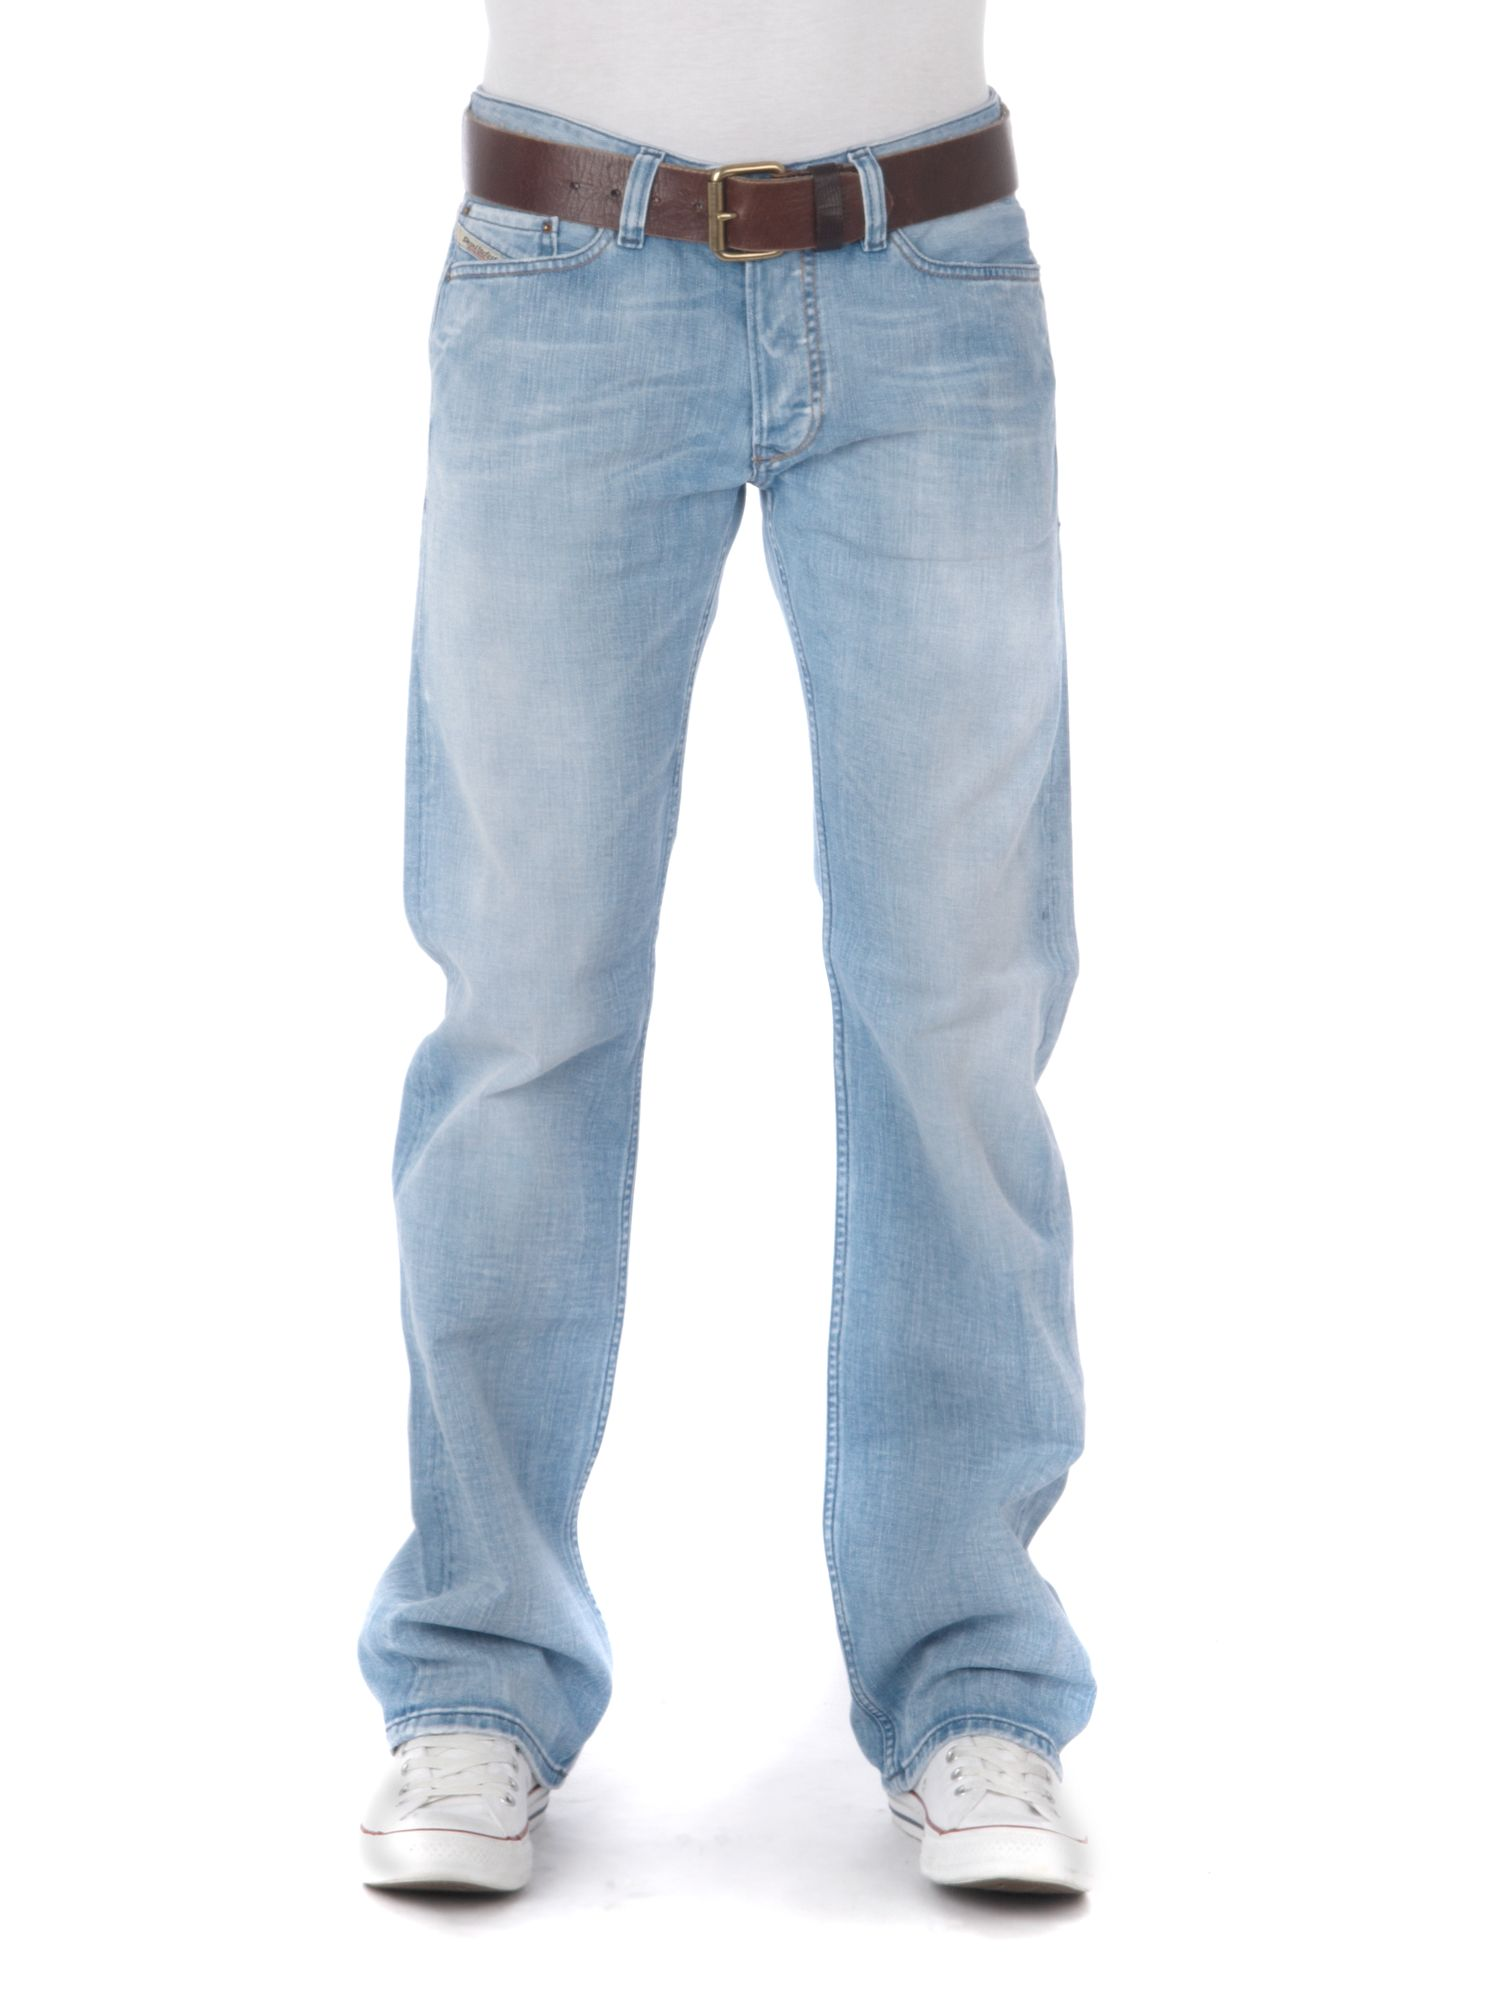 Free shipping and returns on Men's Light Blue Wash Jeans & Denim at trueiupnbp.gq